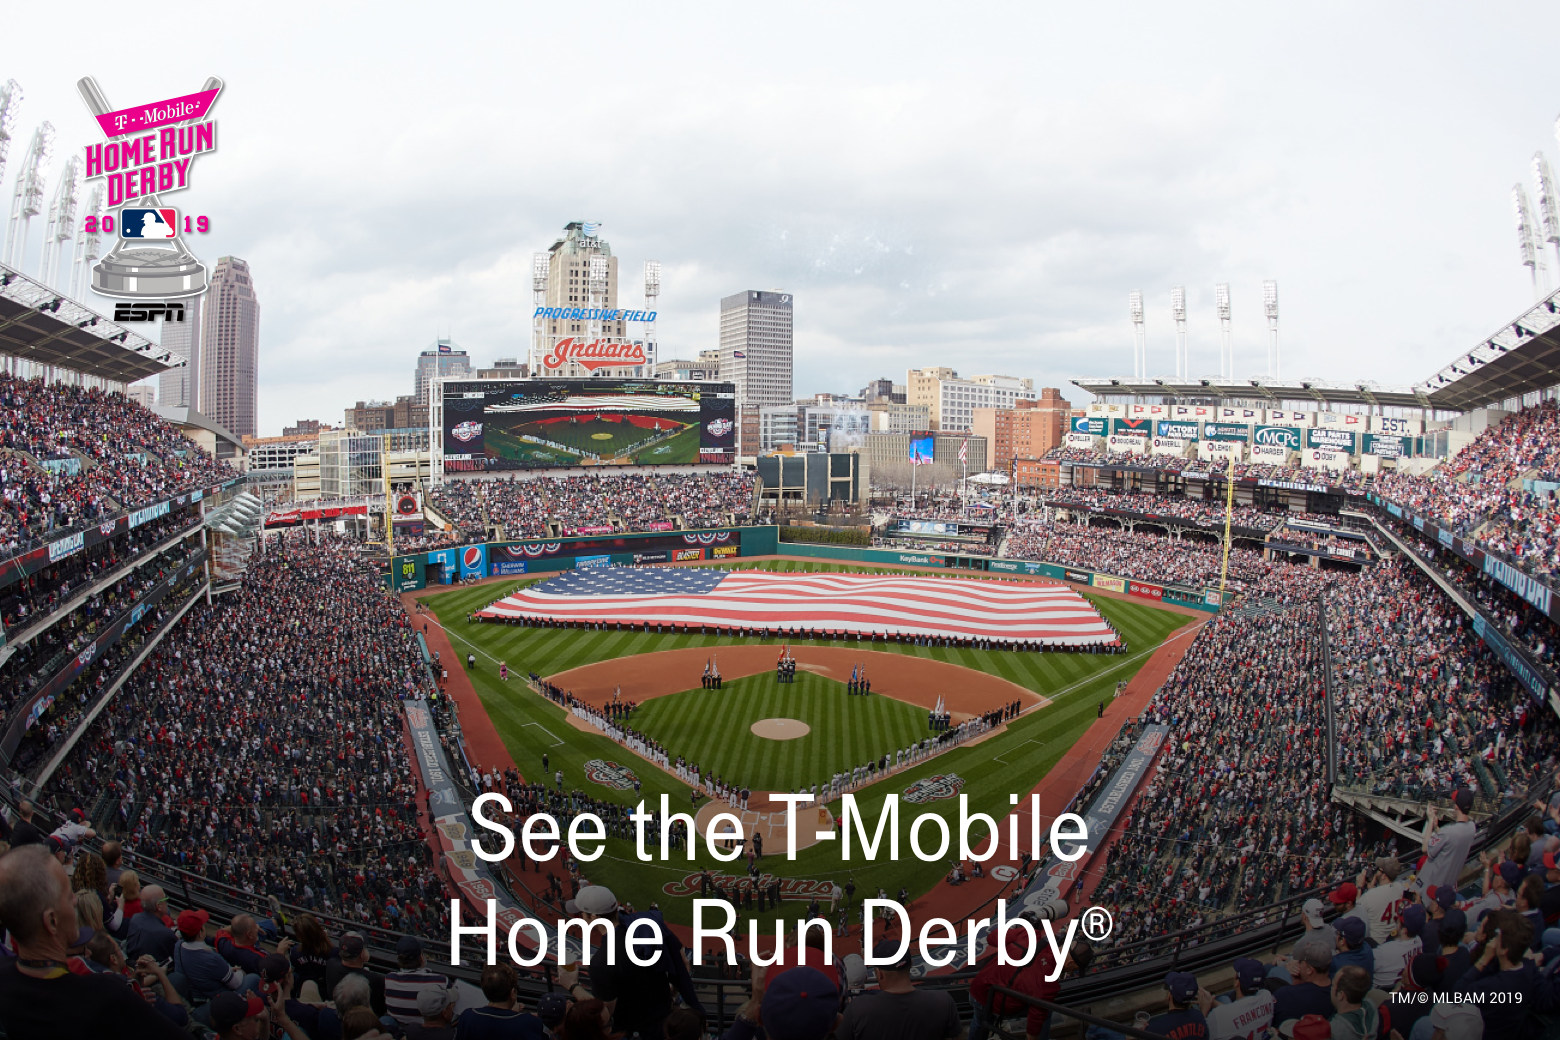 T-Mobile Home Run Derby 2019. See the T-Mobile Home Run Derby®